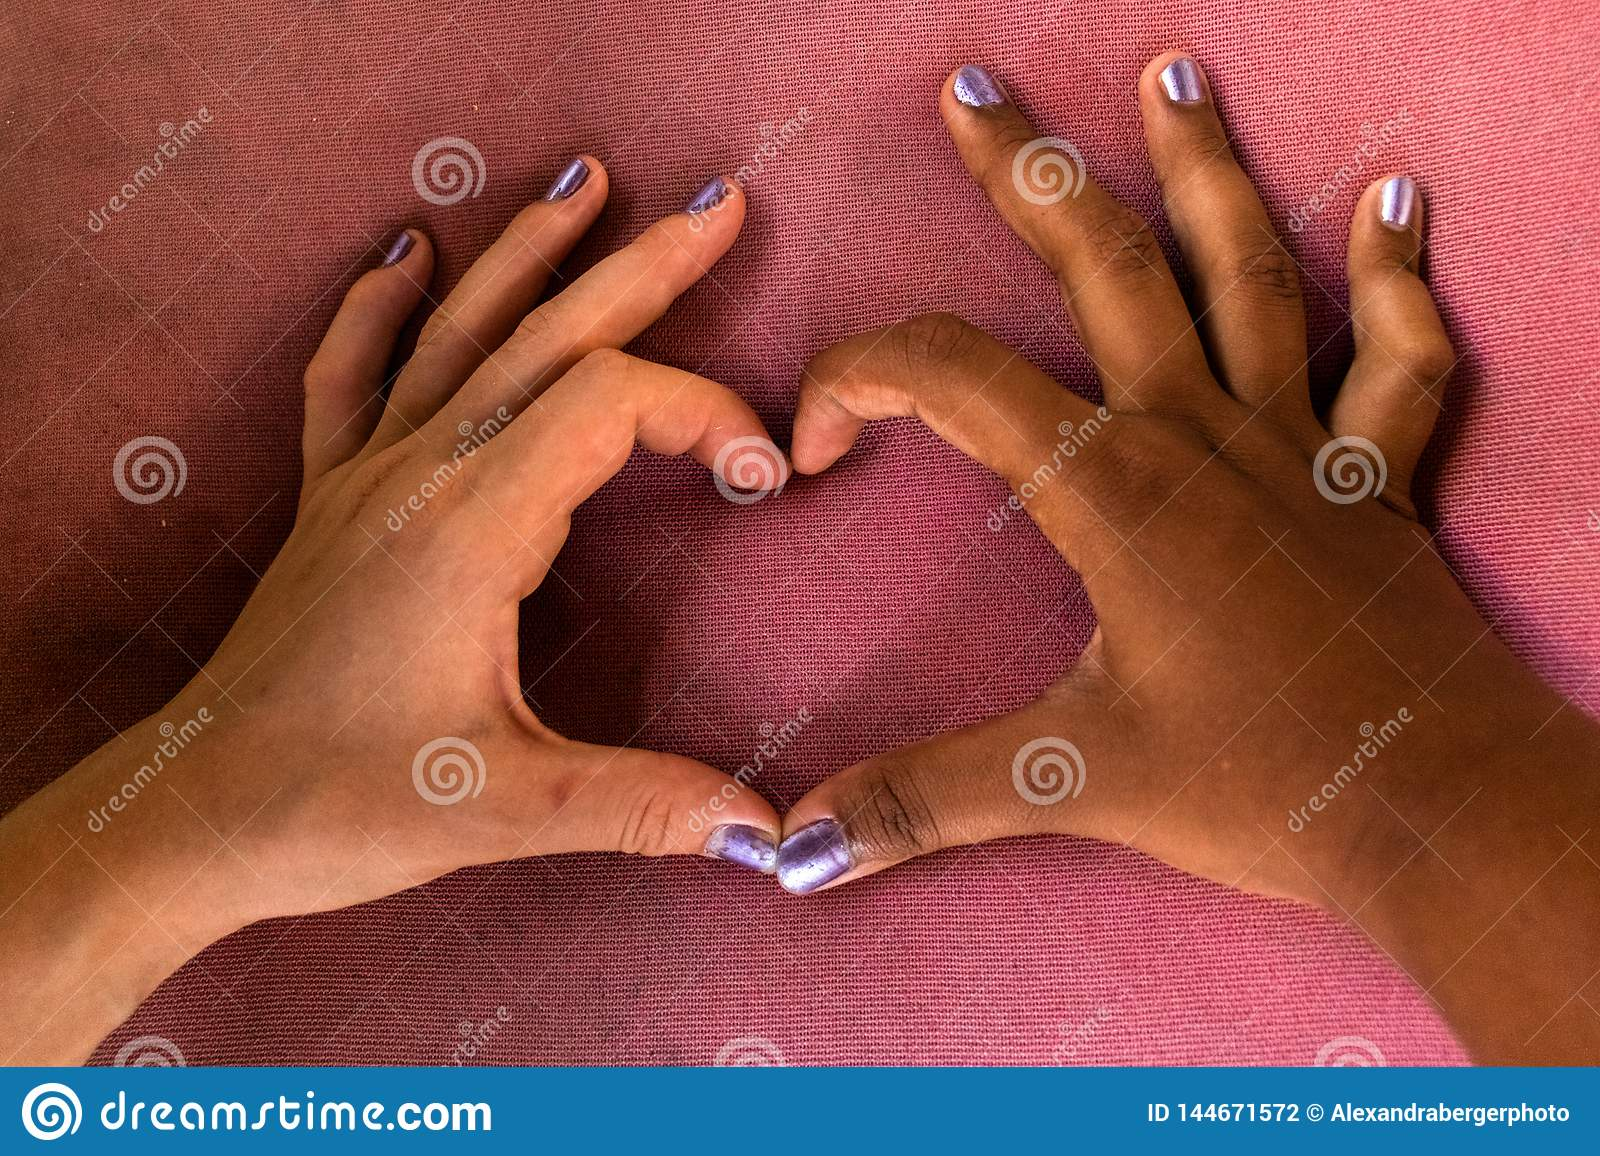 White and black hands of girlfriends form a heart of fingers against racism